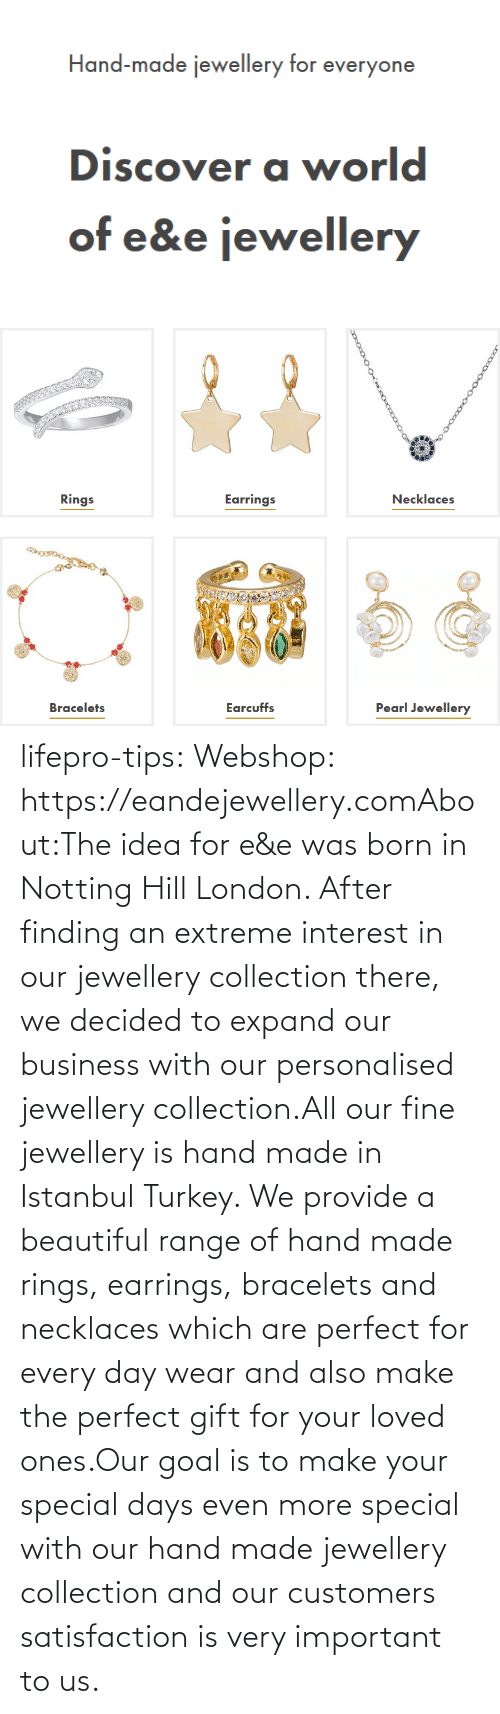 About The: lifepro-tips: Webshop: https://eandejewellery.comAbout:The idea for e&e was born in Notting Hill London. After  finding an extreme interest in our jewellery collection there, we  decided to expand our business with our personalised jewellery  collection.All our fine jewellery is hand made in Istanbul Turkey. We  provide a beautiful range of hand made rings, earrings, bracelets and  necklaces which are perfect for every day wear and also make the perfect  gift for your loved ones.Our goal is to make your special days even more special with  our hand made jewellery collection and our customers satisfaction is  very important to us.